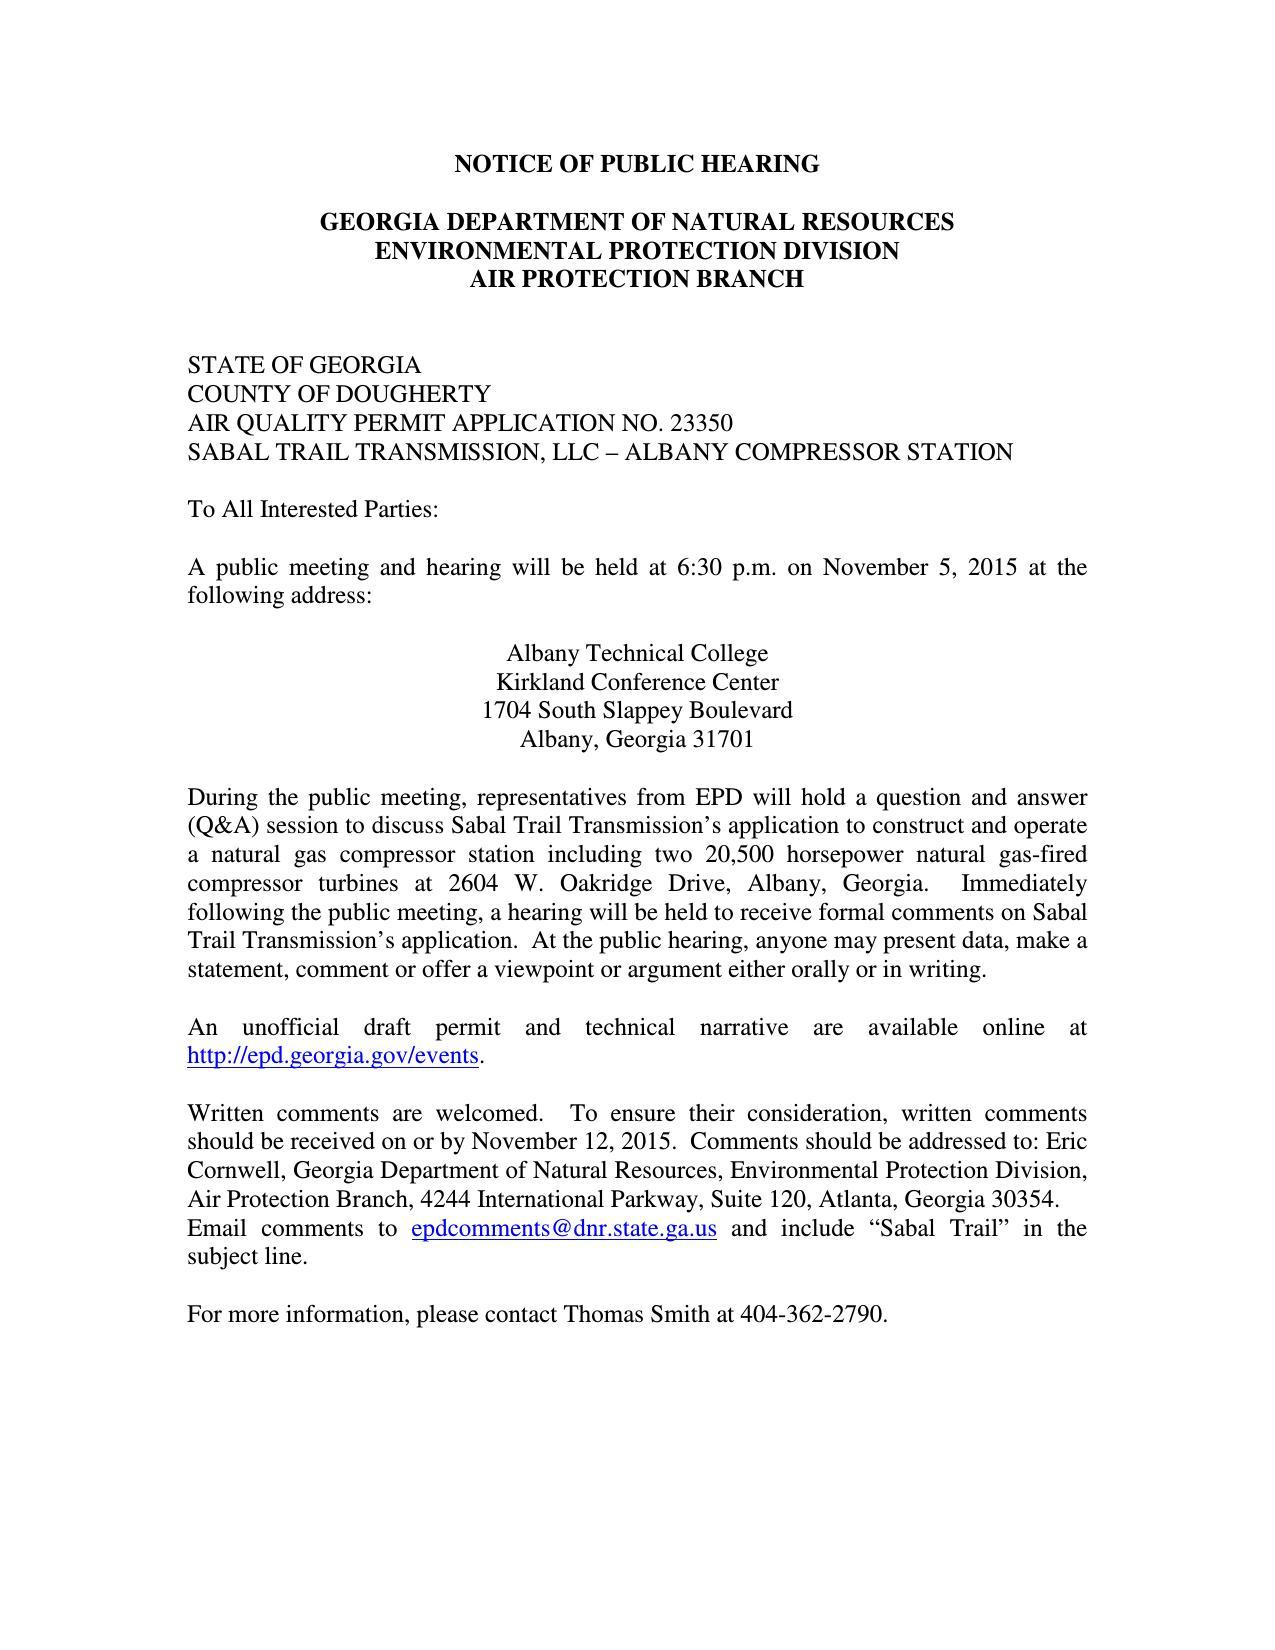 1275x1650 Notice, in Public Hearing, Albany Compressor Station, by GA-EPD, for SpectraBusters.org, 5 November 2015